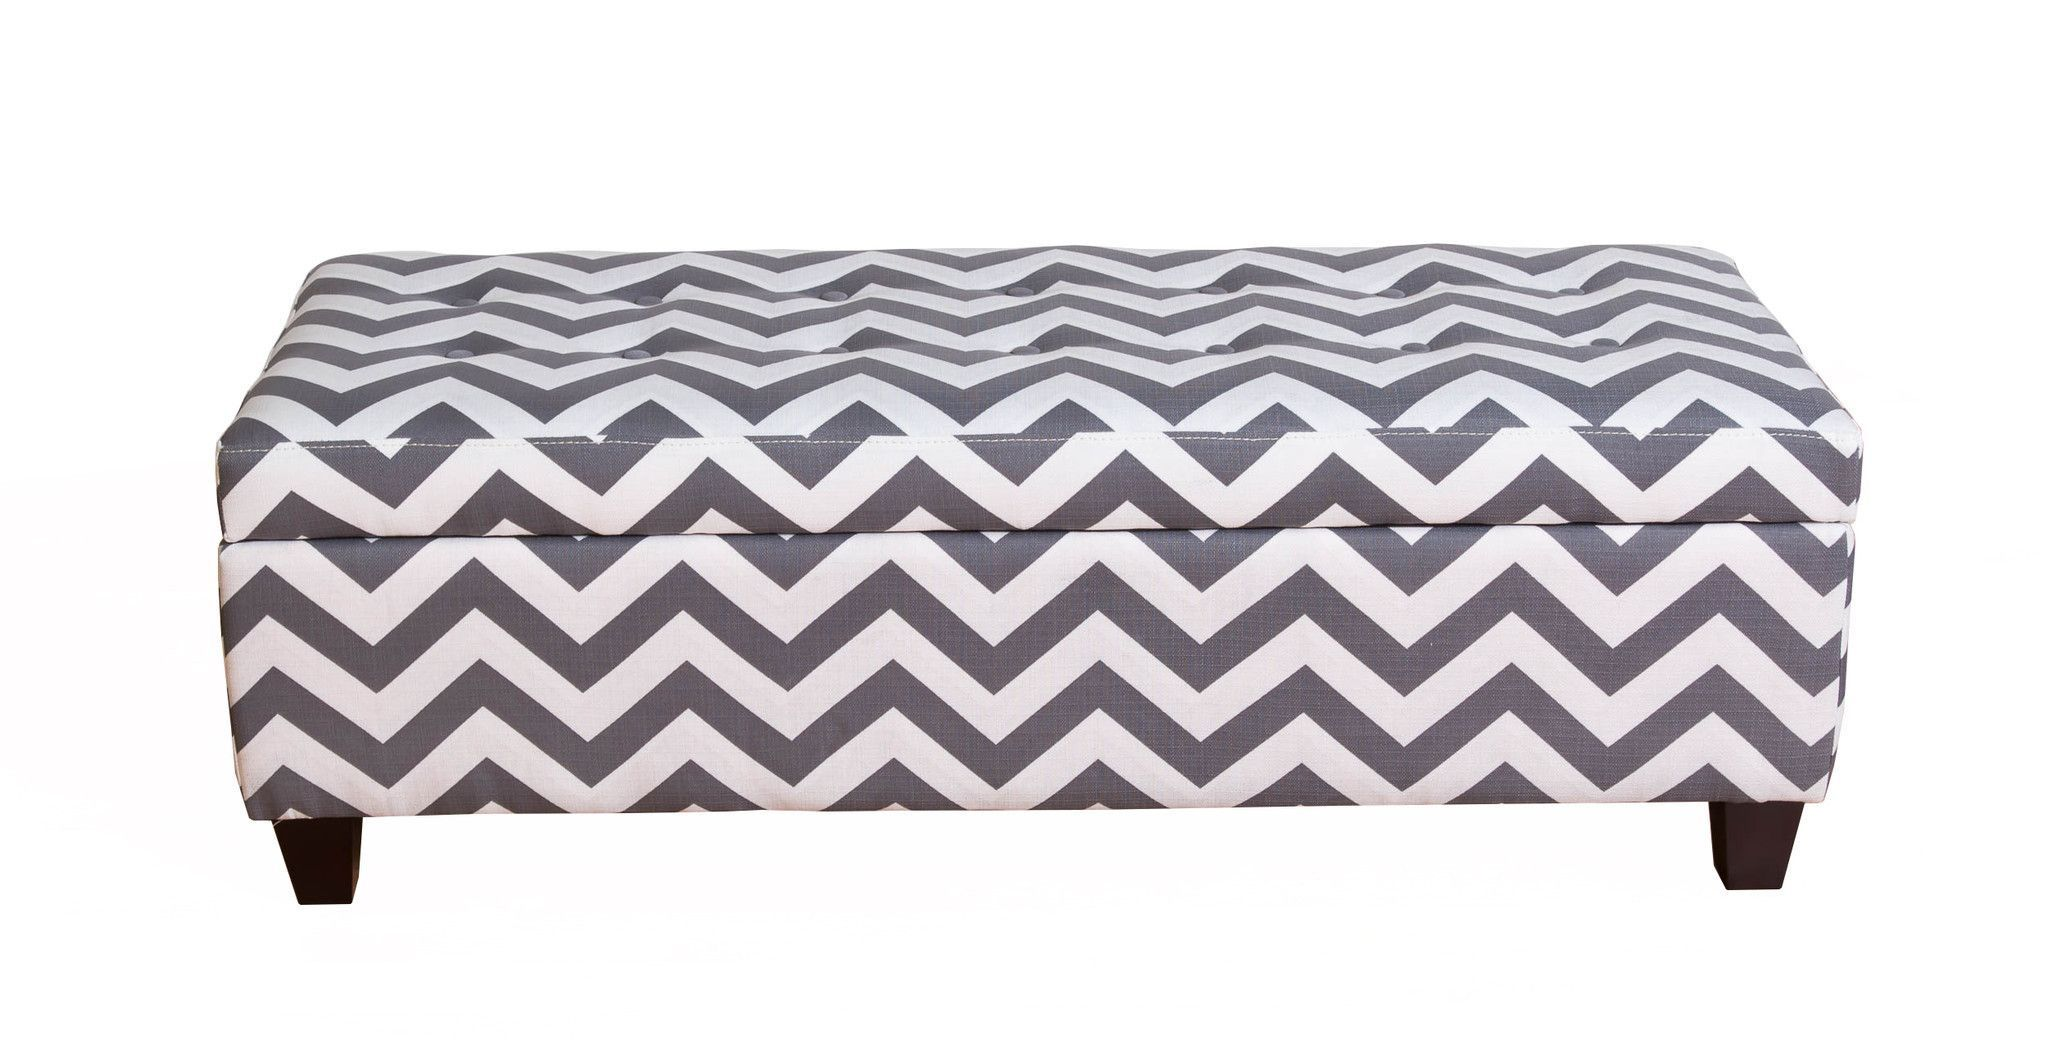 Pleasing Bombay Medina Grey Chevron Storage Ottoman Bench Bedroom Caraccident5 Cool Chair Designs And Ideas Caraccident5Info